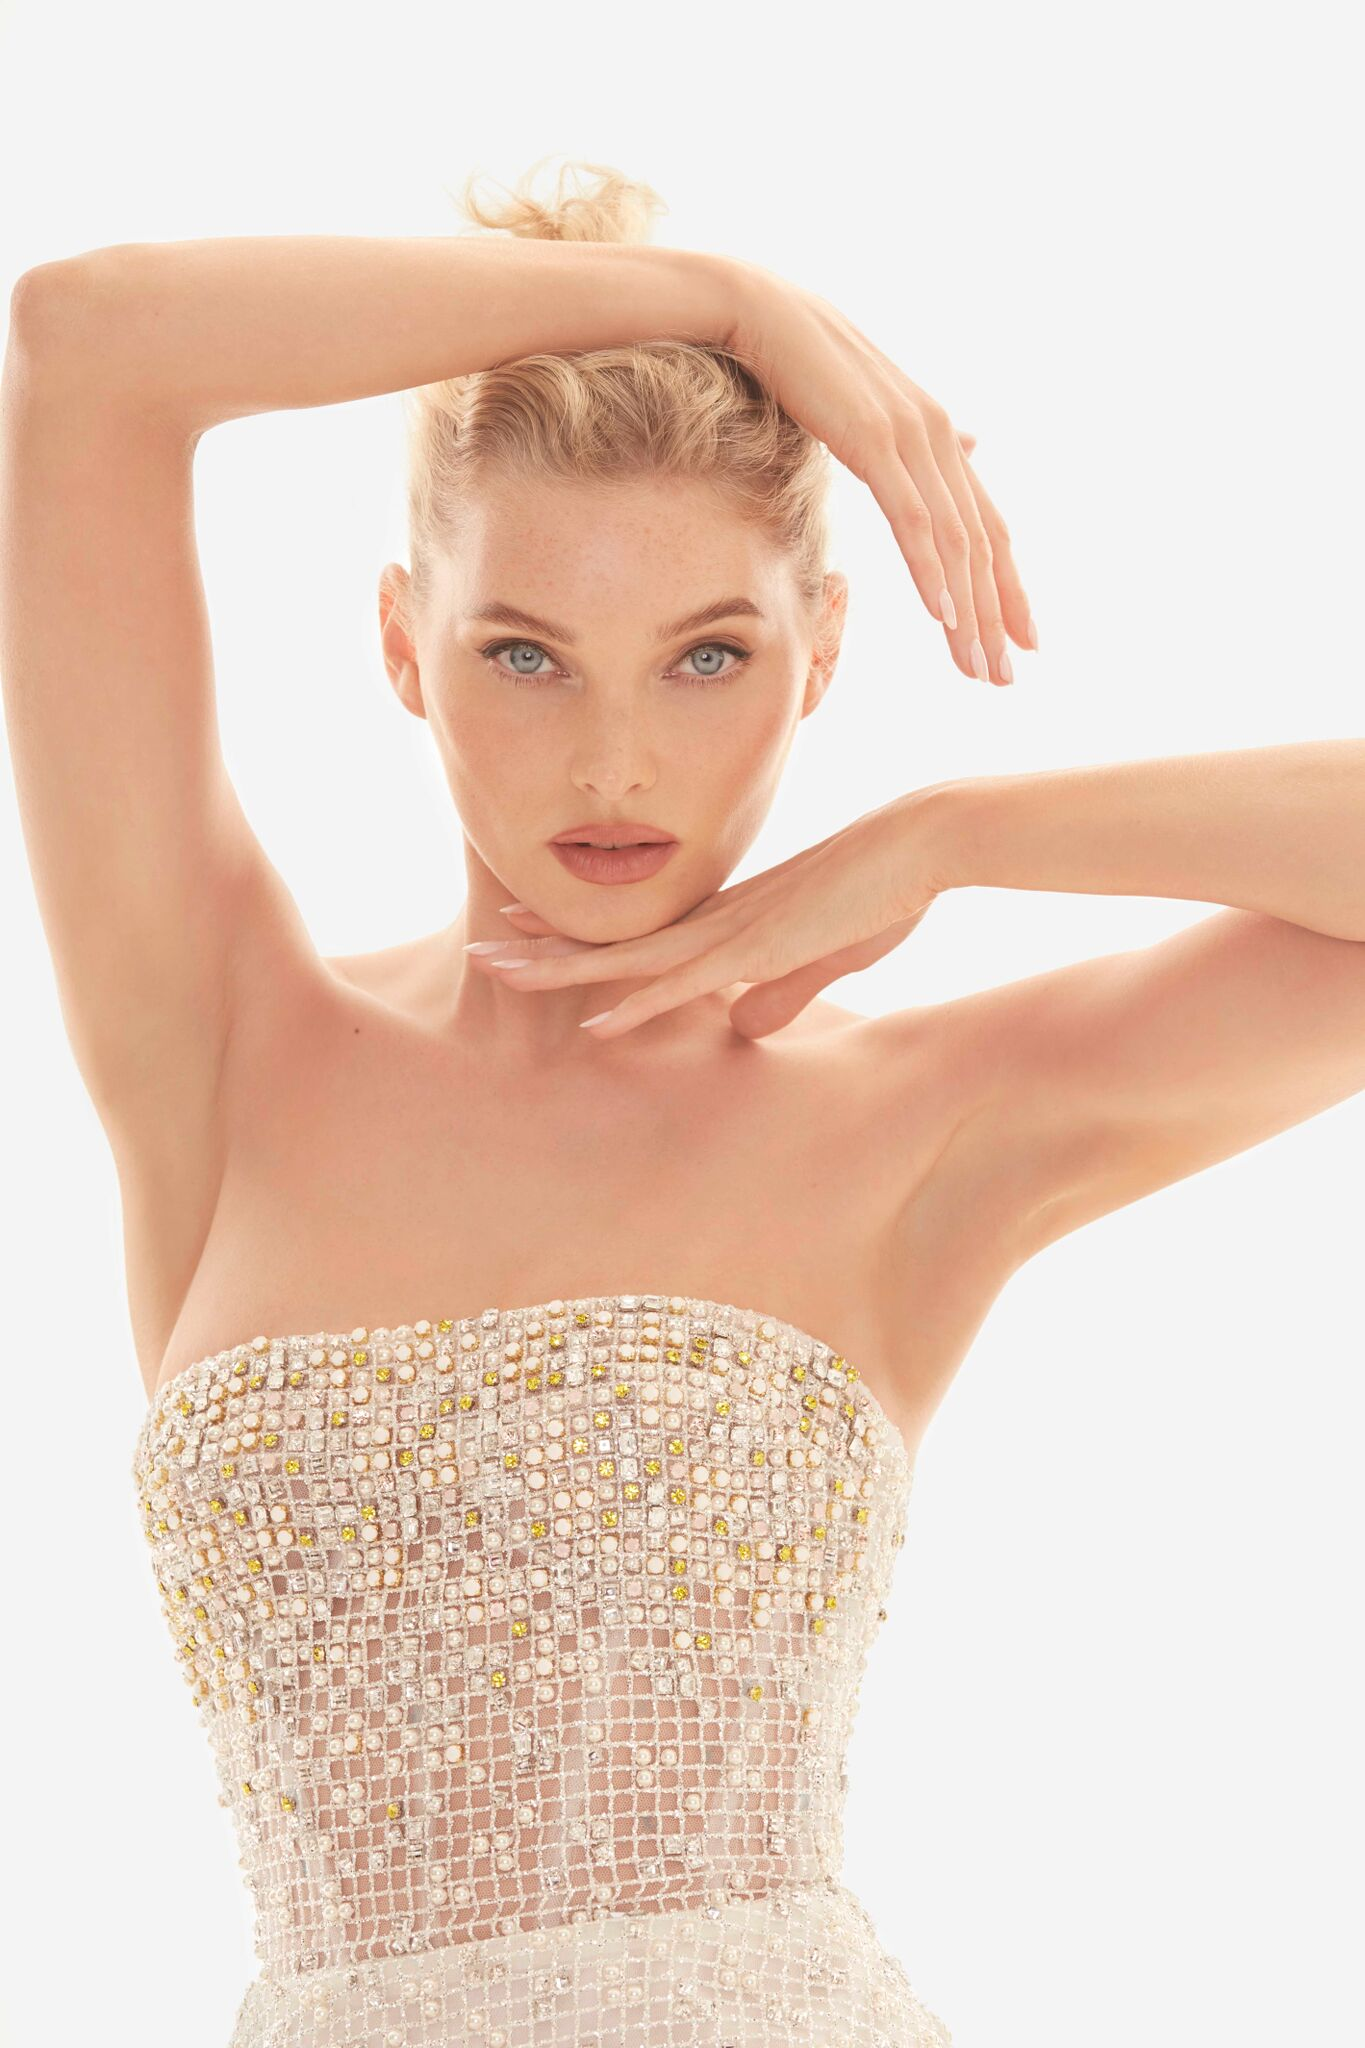 Elsa Hosk and Jessica Stam - Enchant in Nicole Felicia Couture Campaign 2019